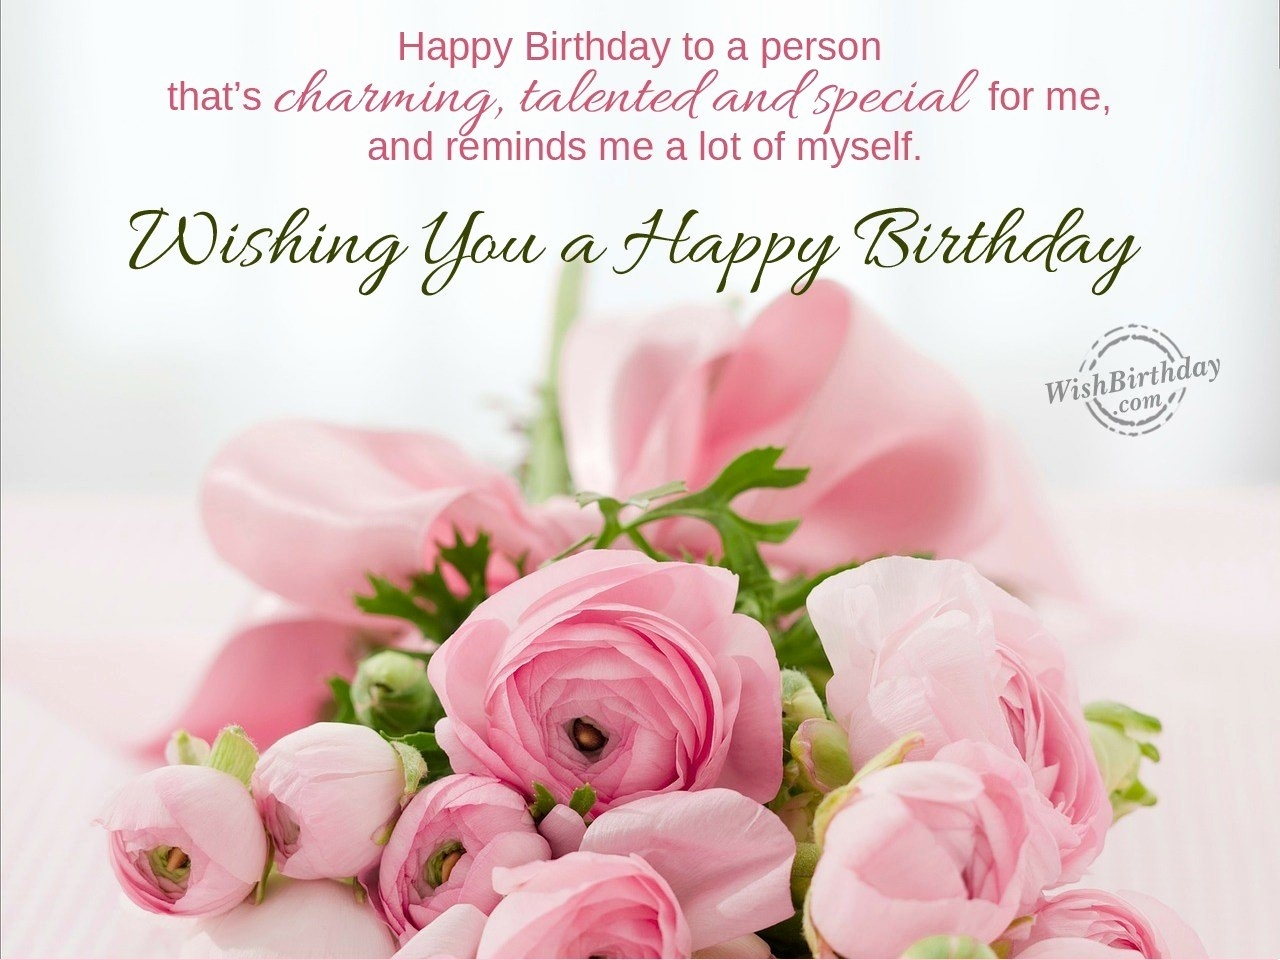 happy birthday images with quotes ; christian-birthday-quotes-for-husband-elegant-happiness-quotes-cozy-religious-happy-birthday-quotes-blessing-of-christian-birthday-quotes-for-husband